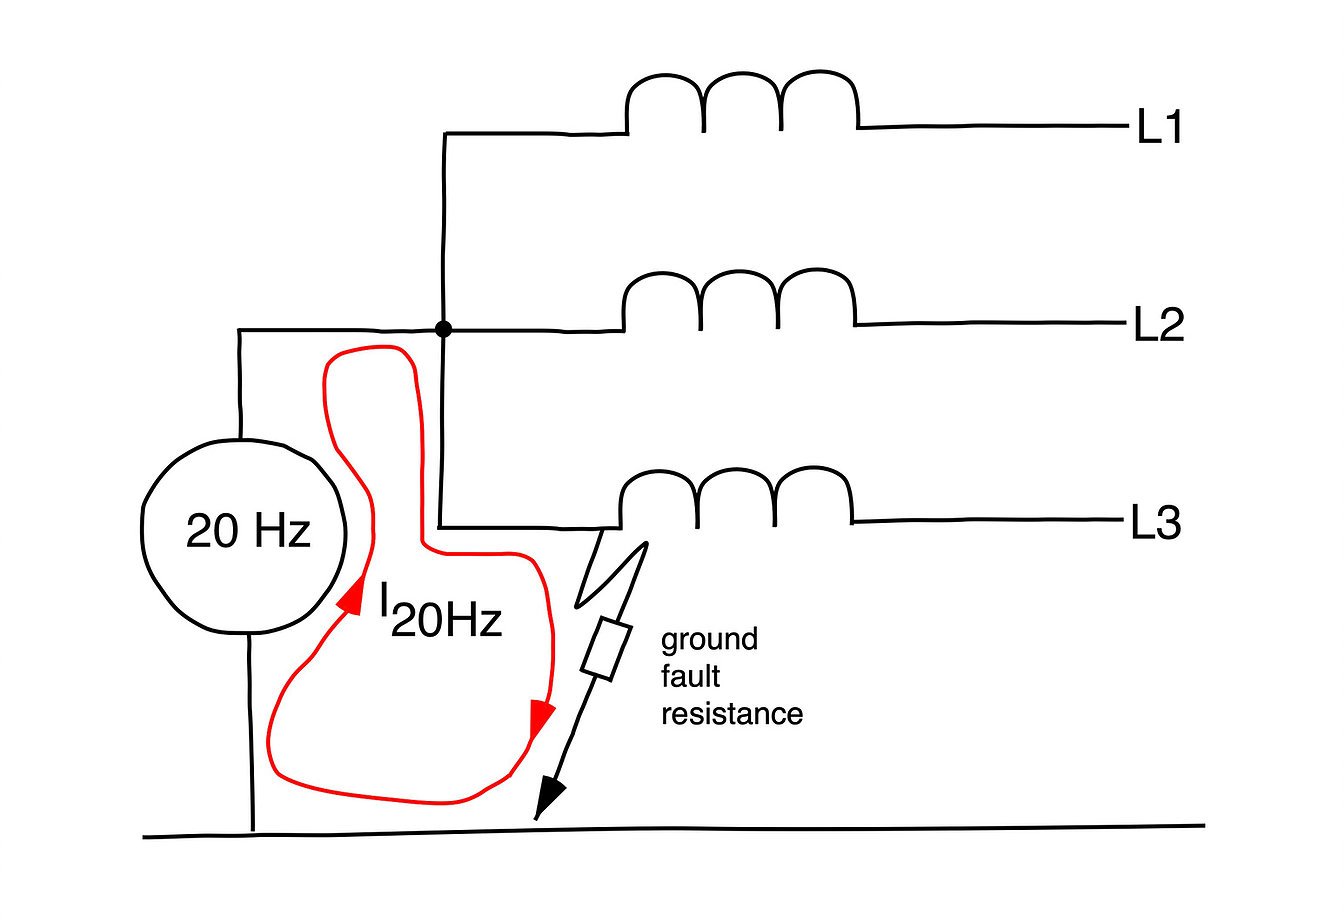 Wiring Diagram In Addition Ground Fault Relay Wiring Diagram Moreover